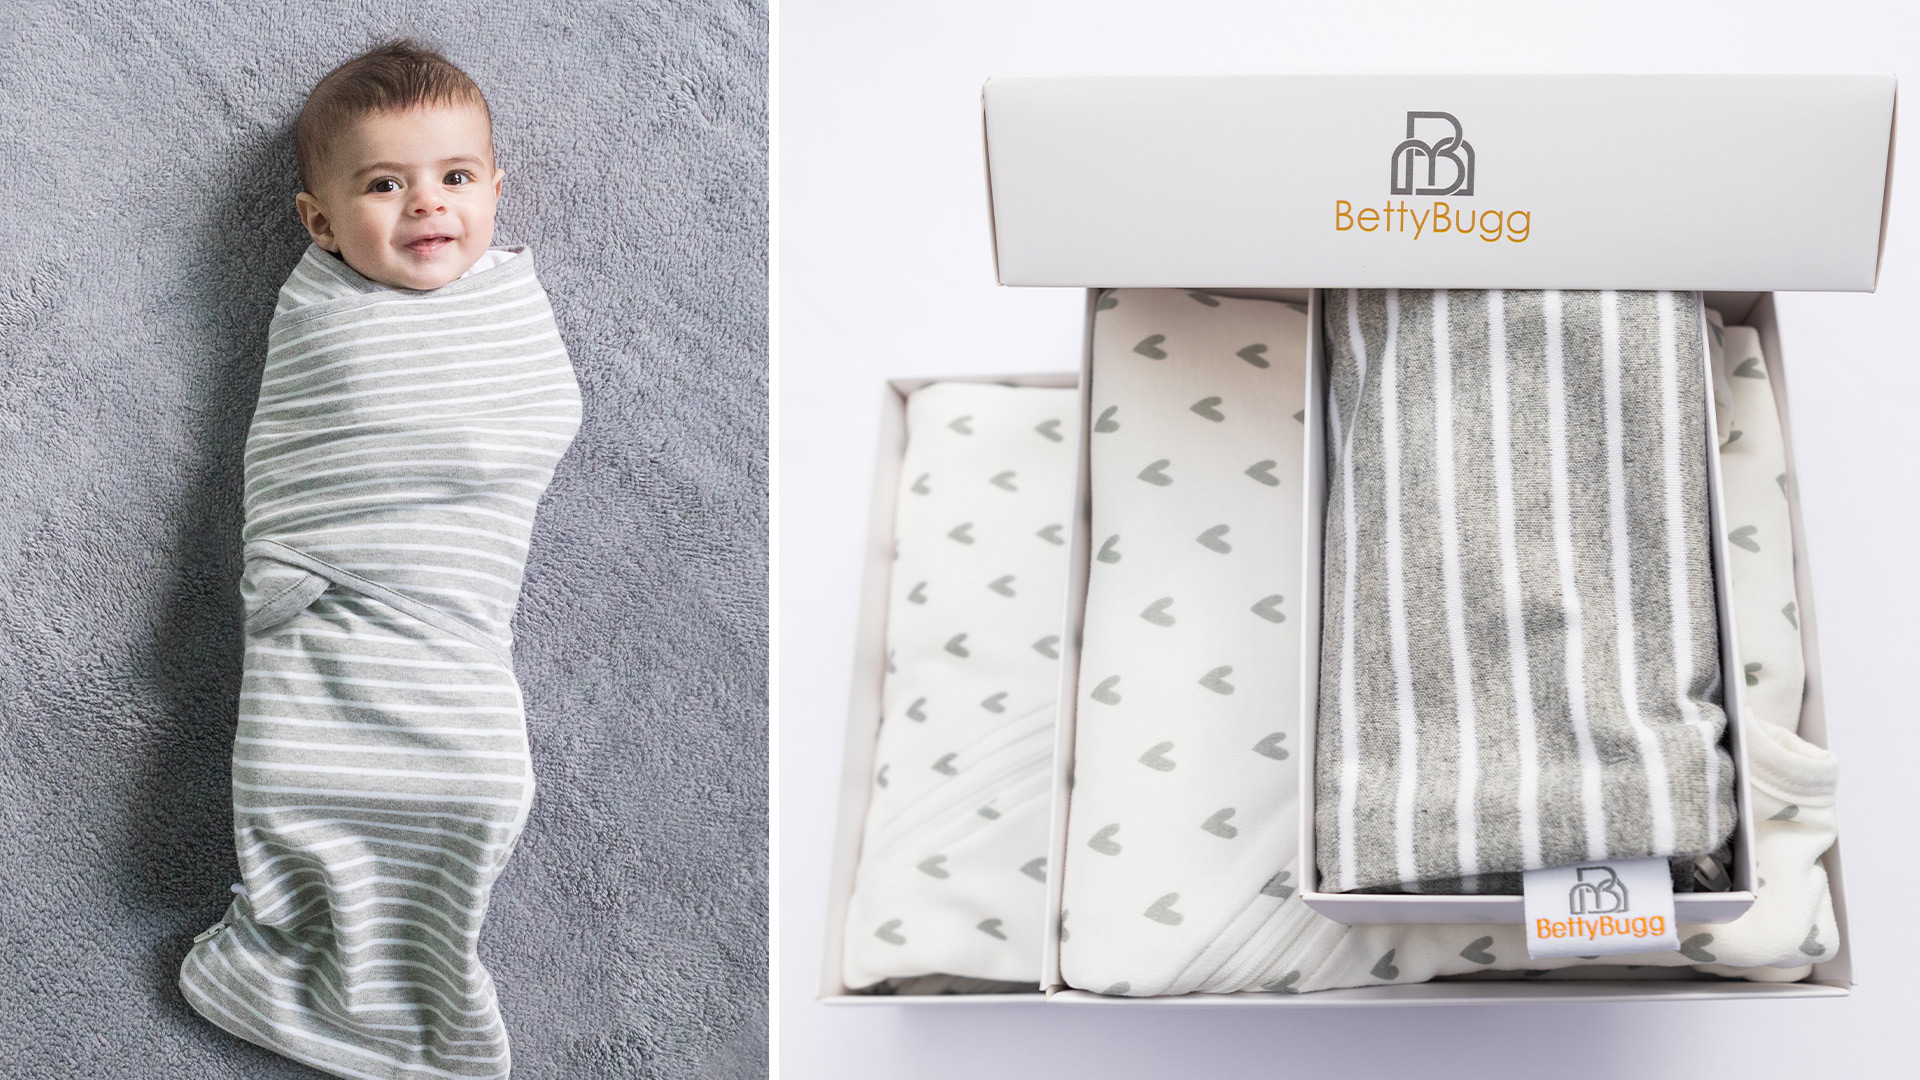 Win two BettyBugg Swaddle Wraps Worth over £21 each!